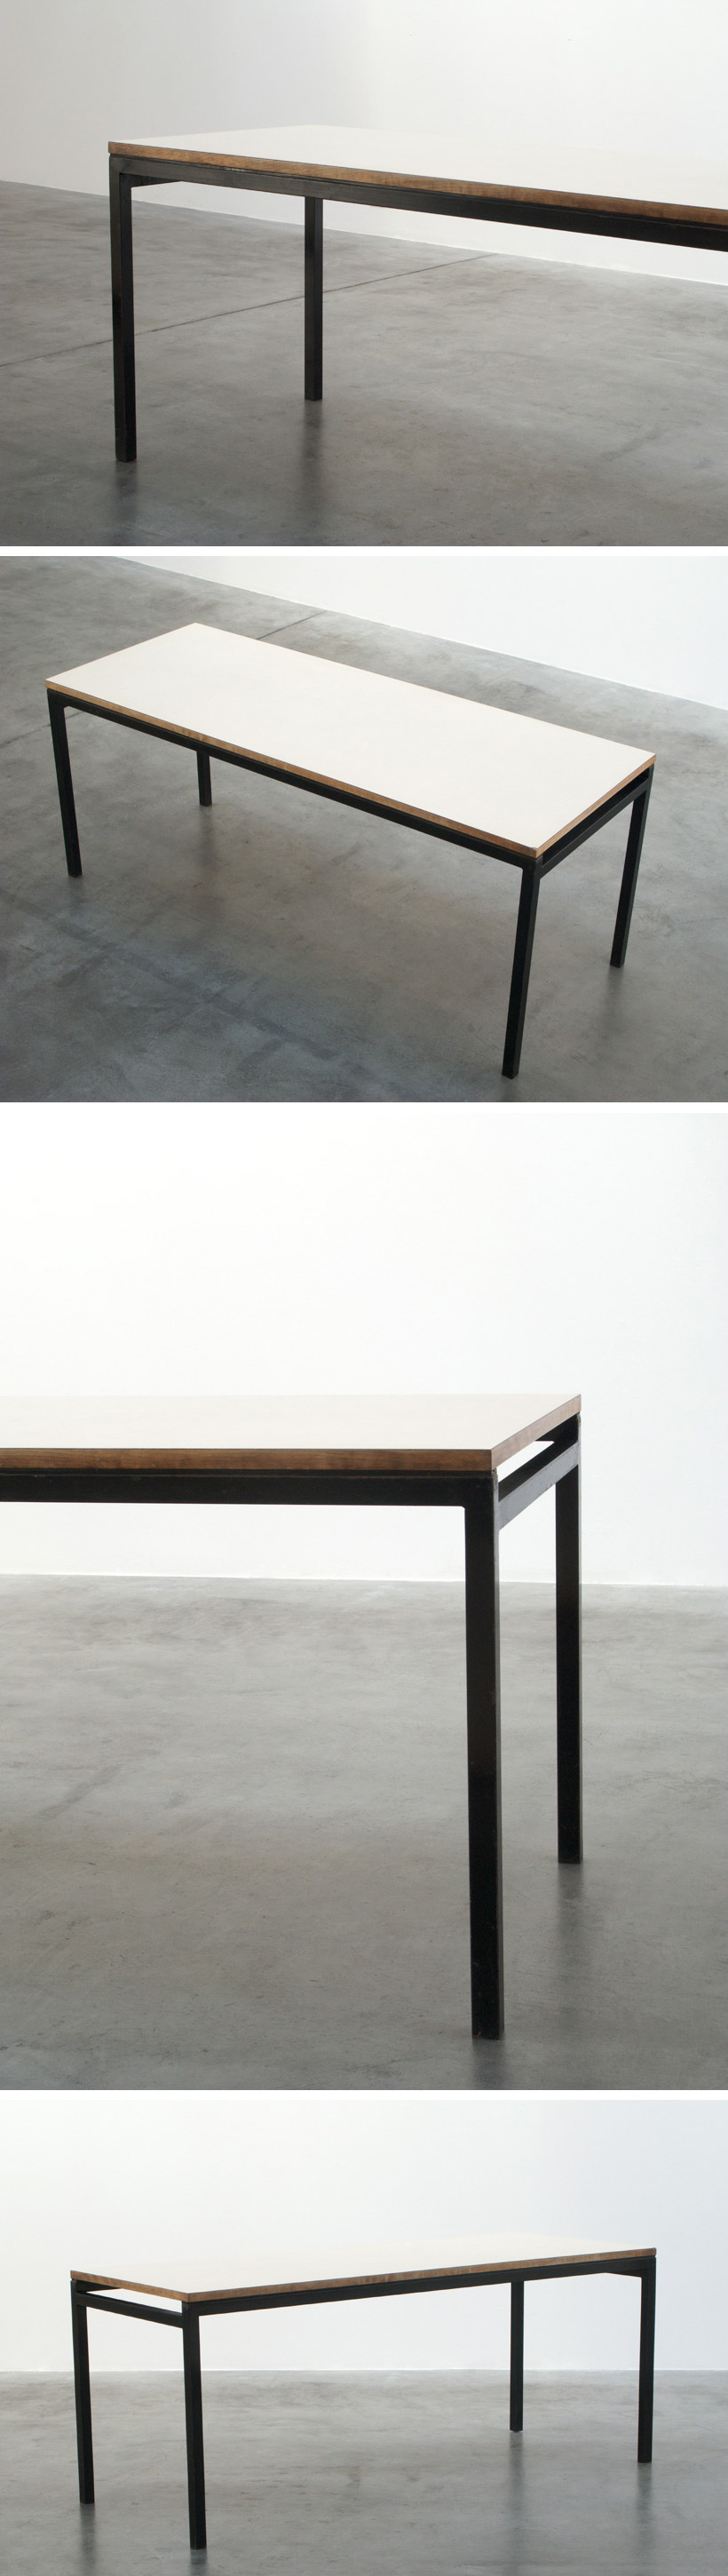 Industrial dinning table Large